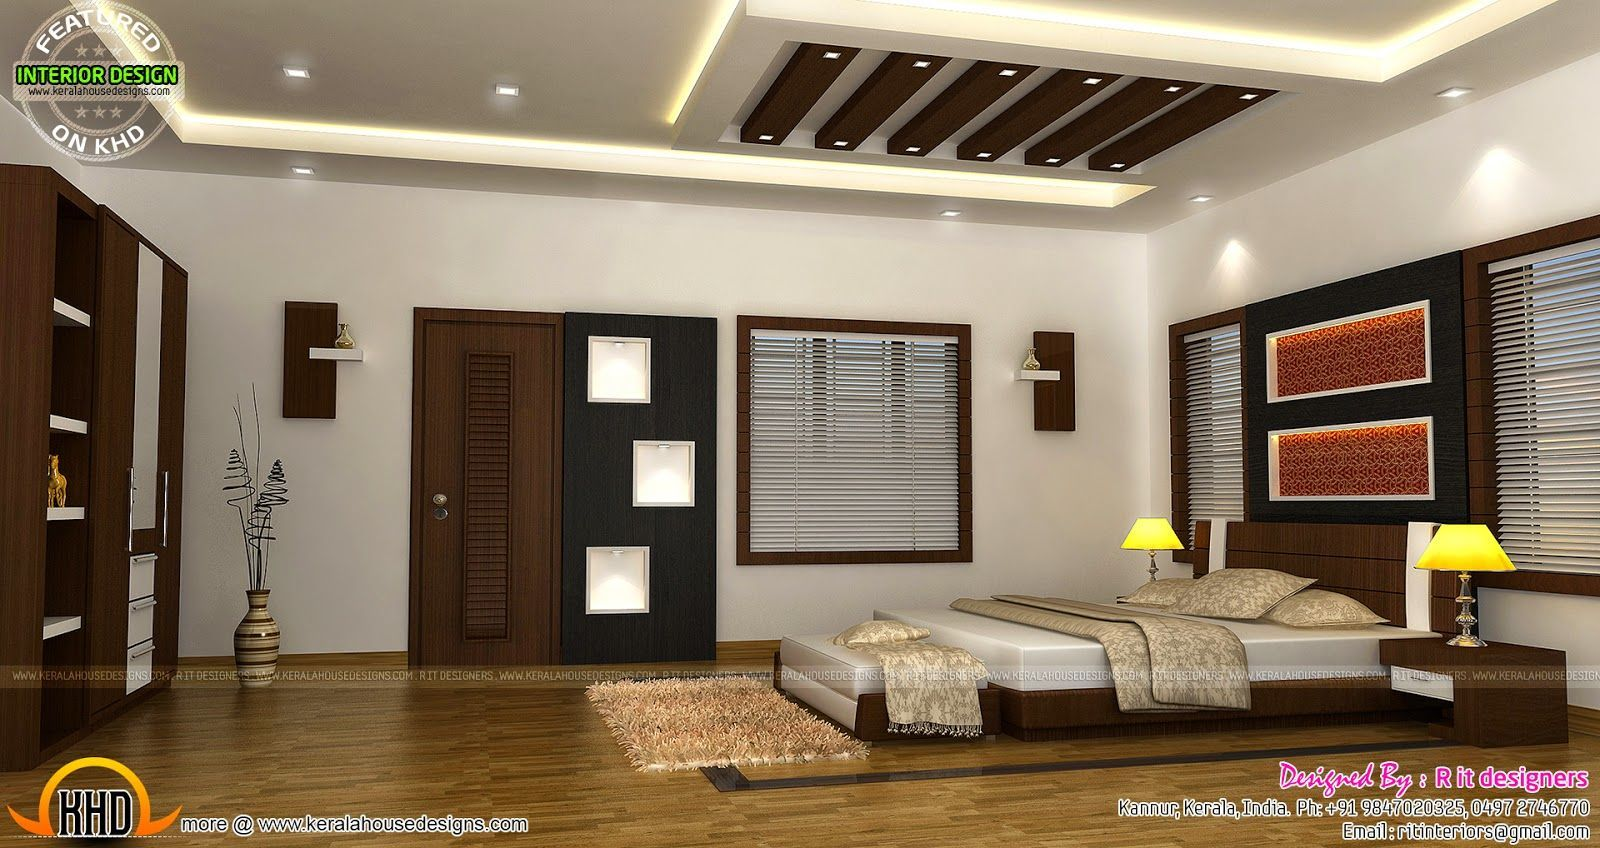 Interior Middle Class House Traditional Kerala Old House Design Interior Design Apartment Small House Interior Design Bedroom Master Bedroom Interior Design Room interior design kerala